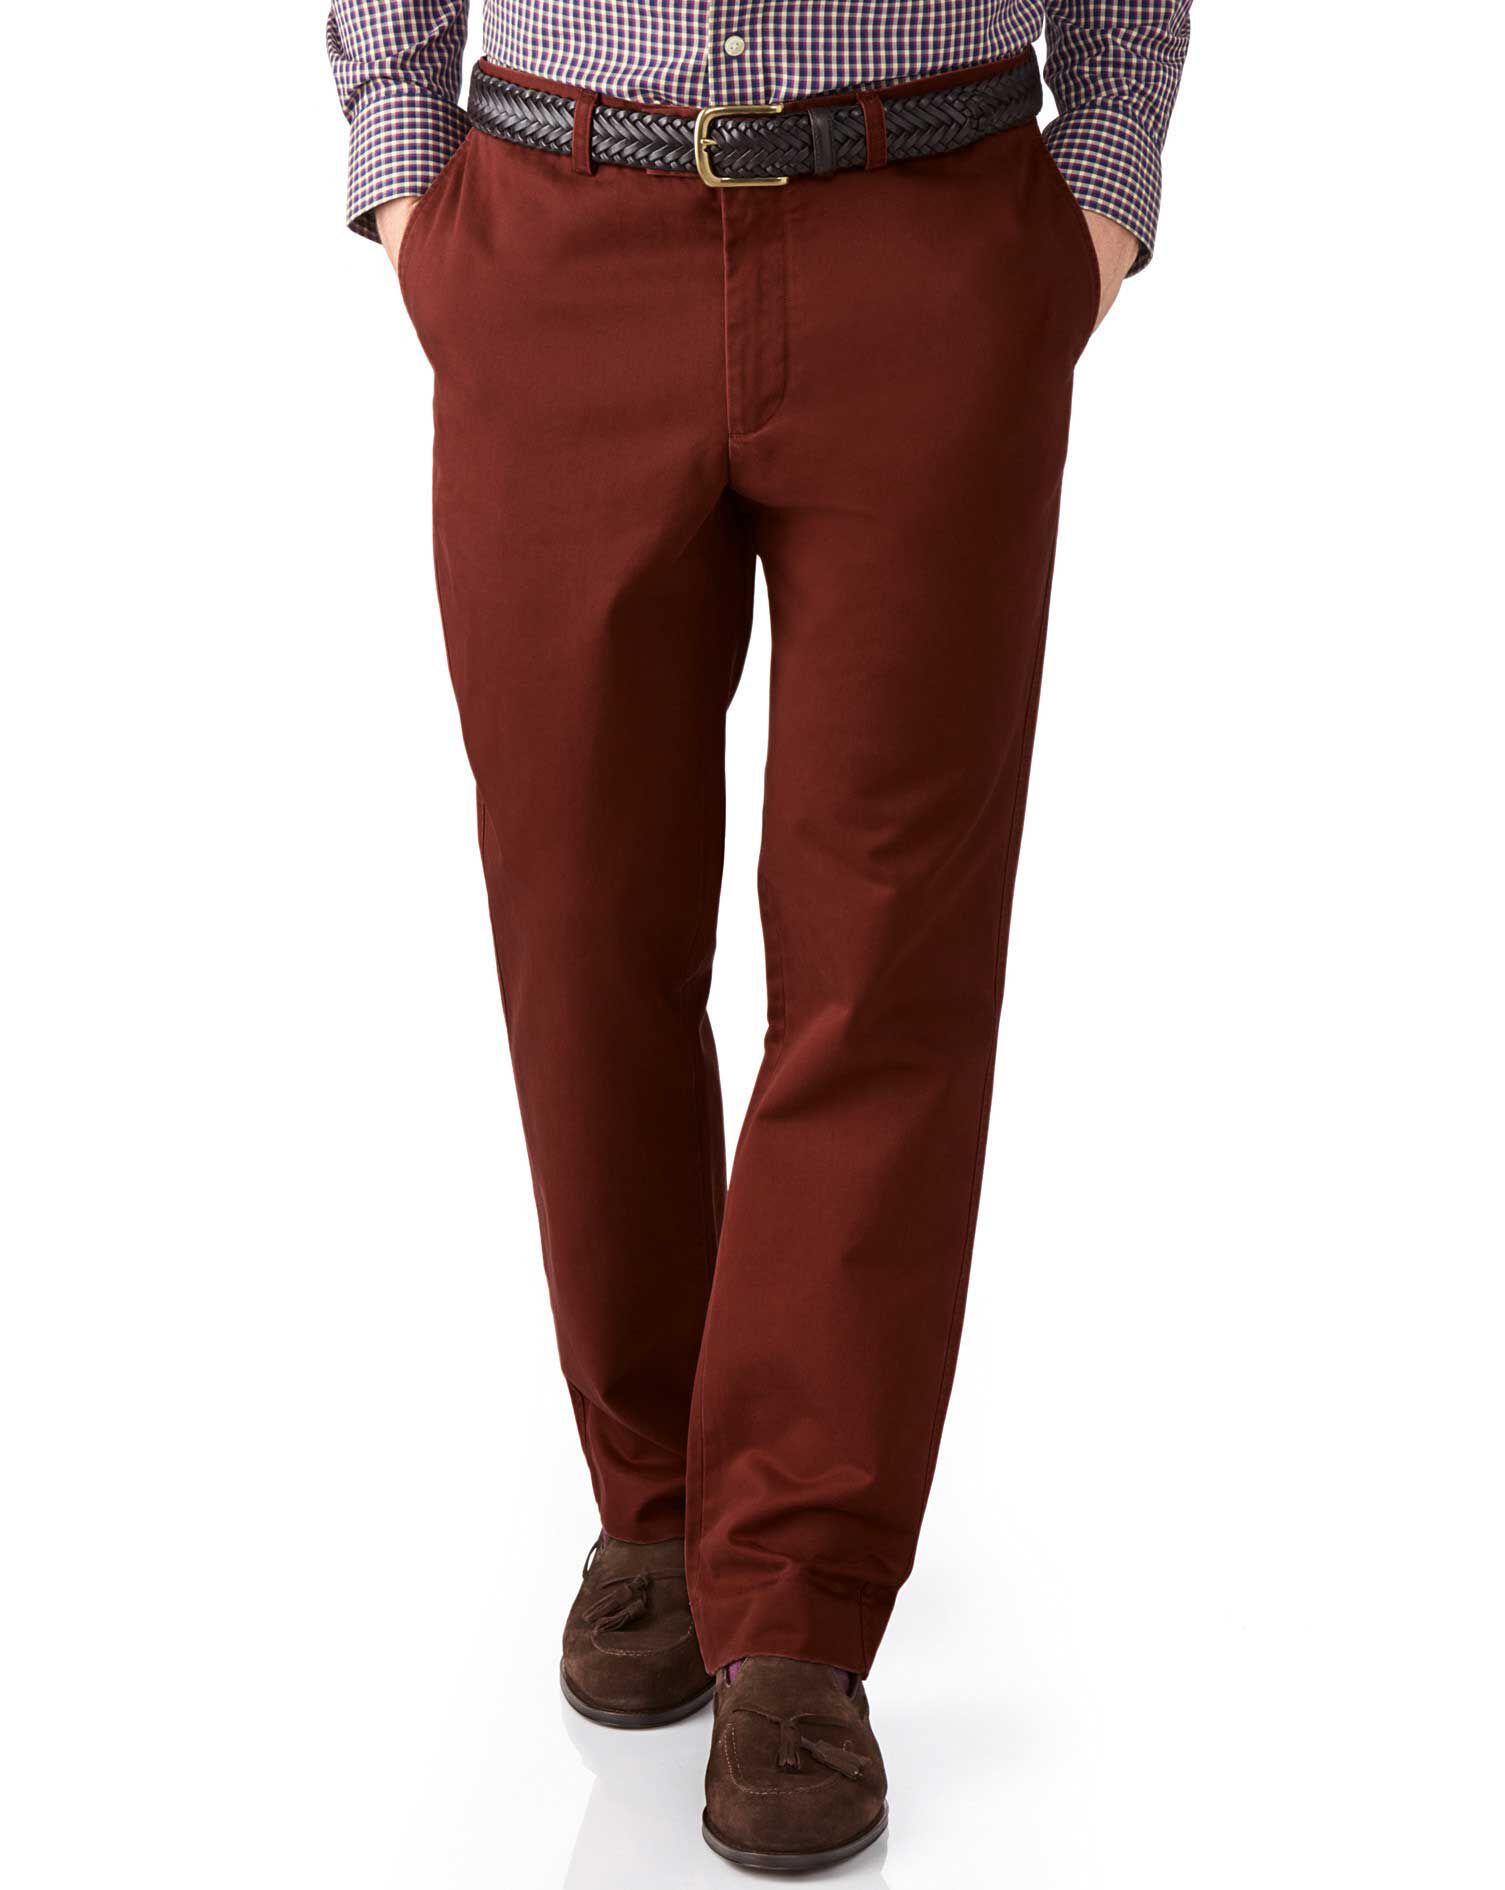 Copper Slim Fit Flat Front Cotton Chino Trousers Size W42 L32 by Charles Tyrwhitt